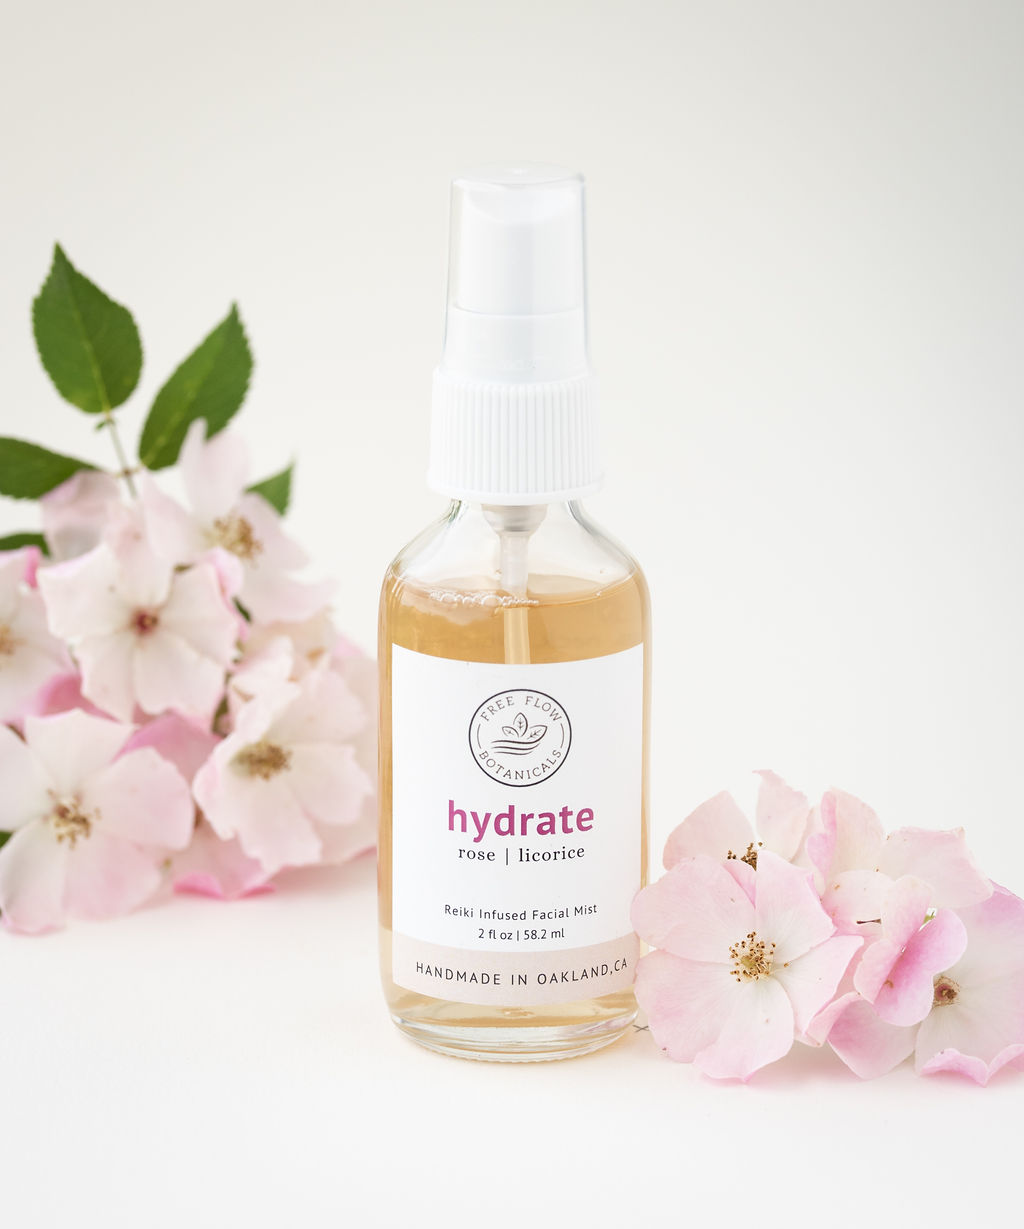 Hydrate Facial Mist - from $14